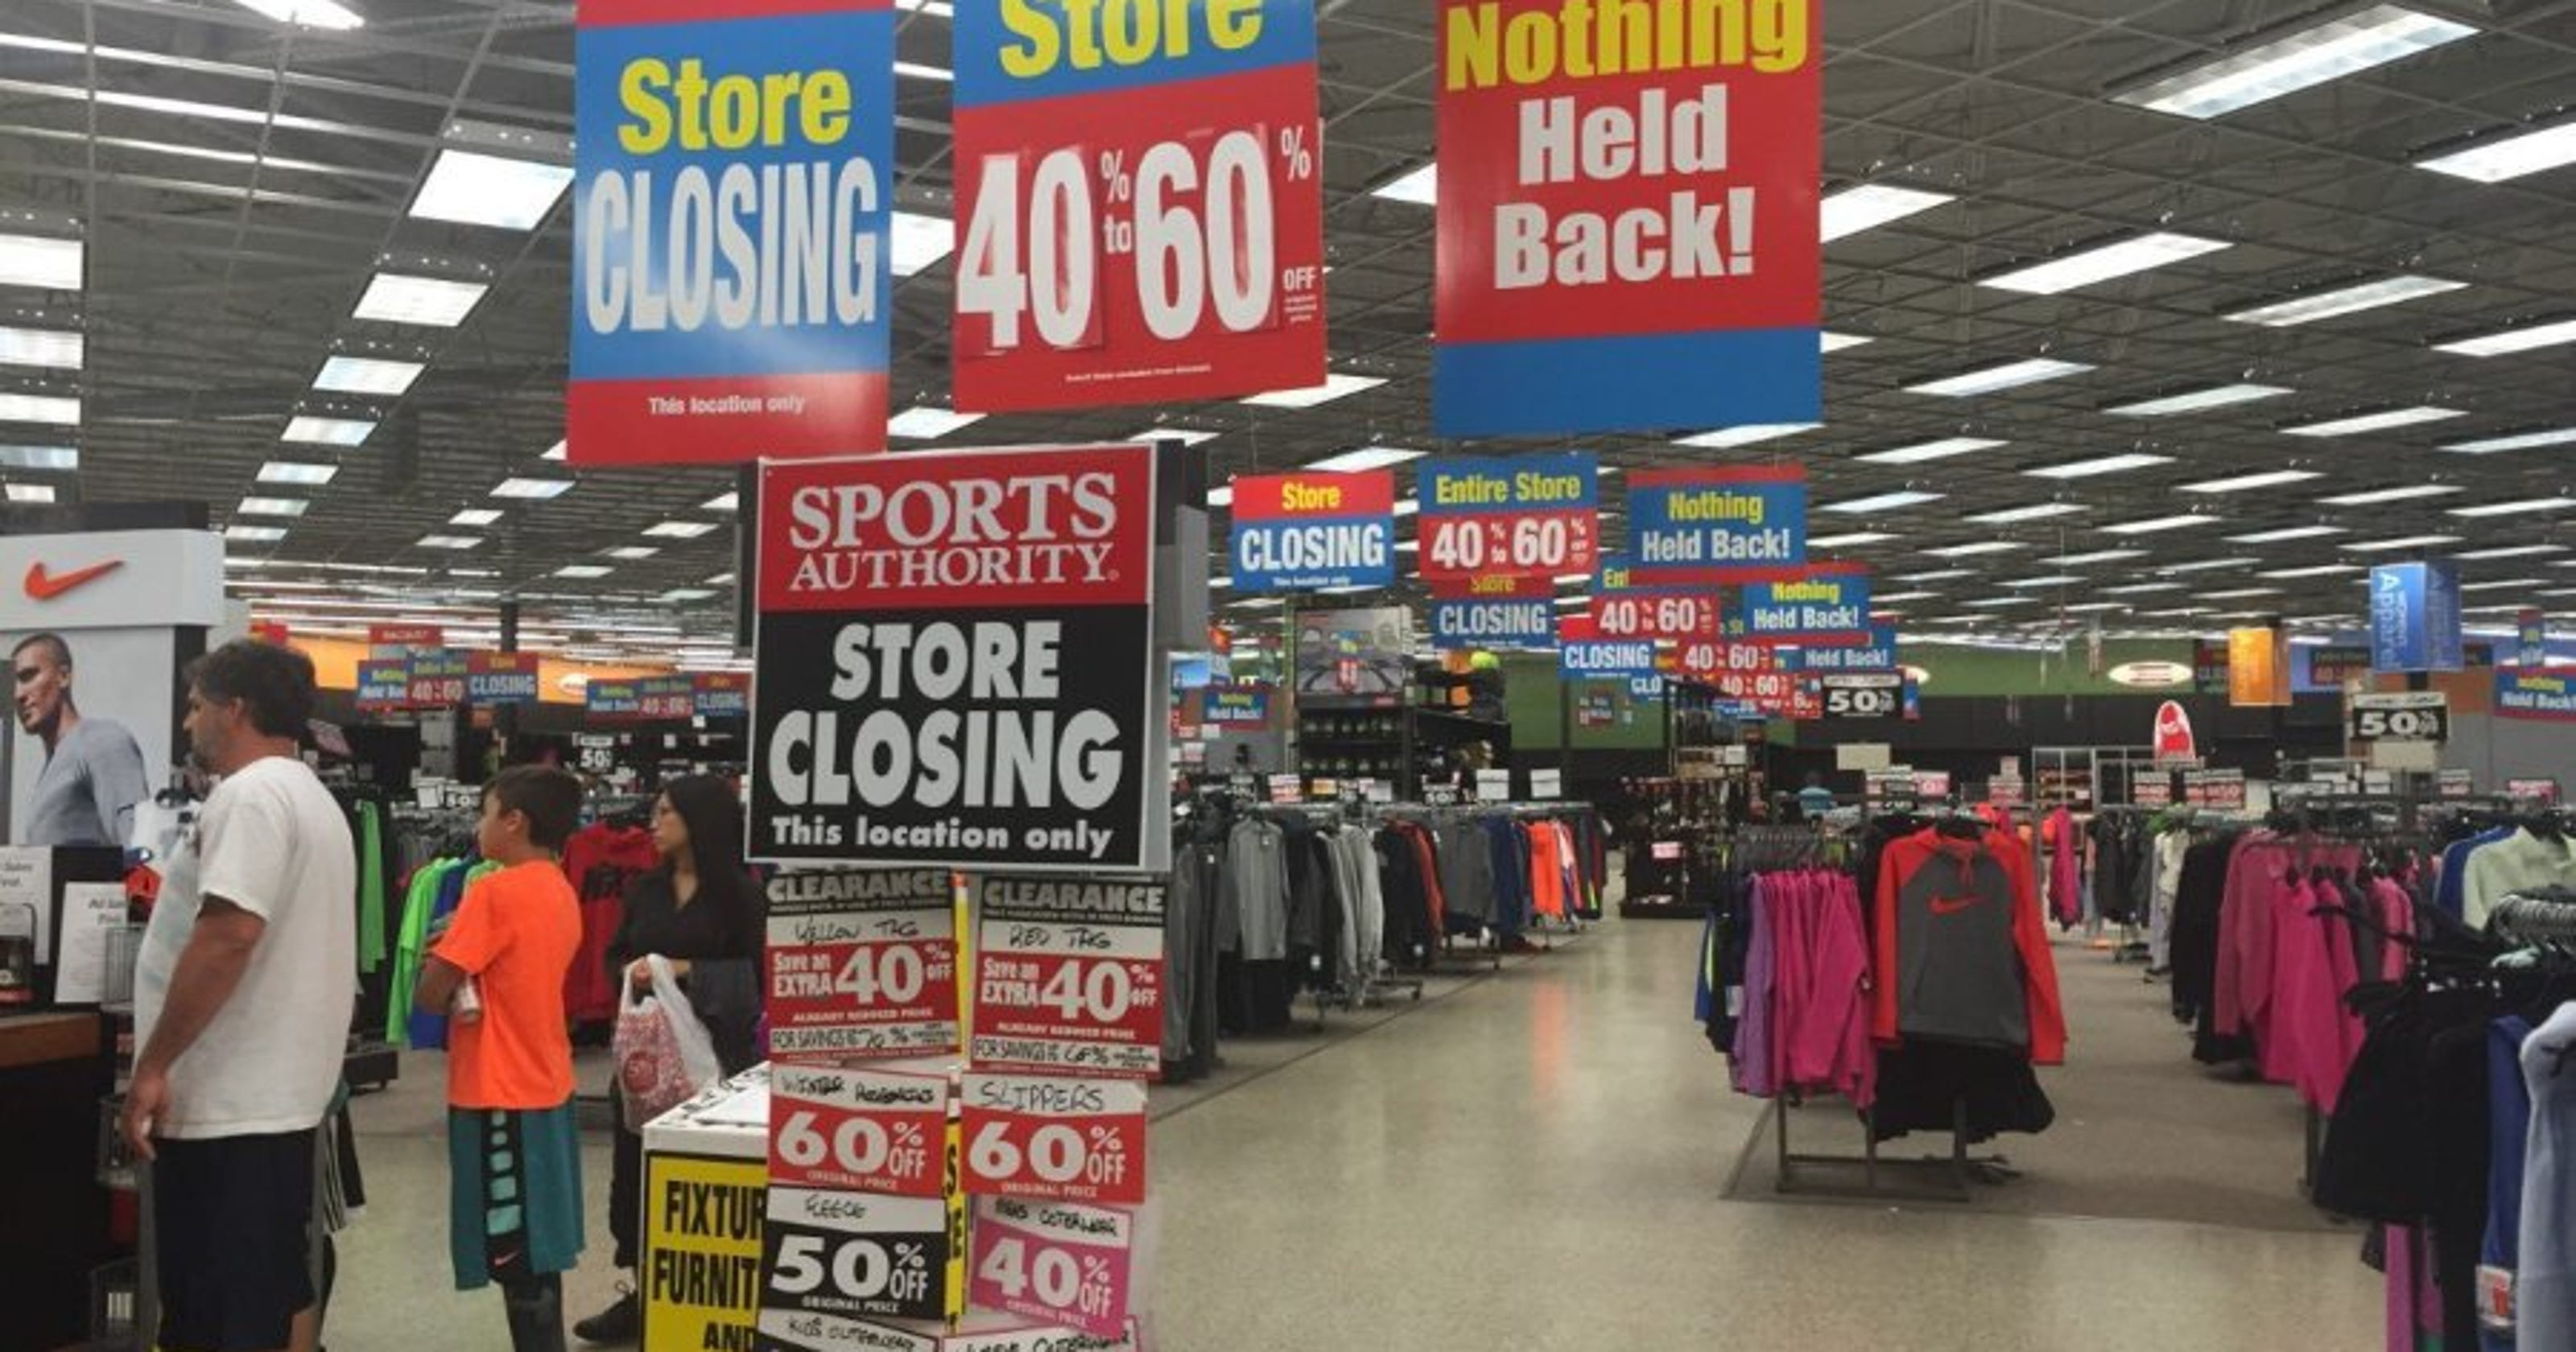 Sports Authority Closings Can Mean Good Deals Eventually Map